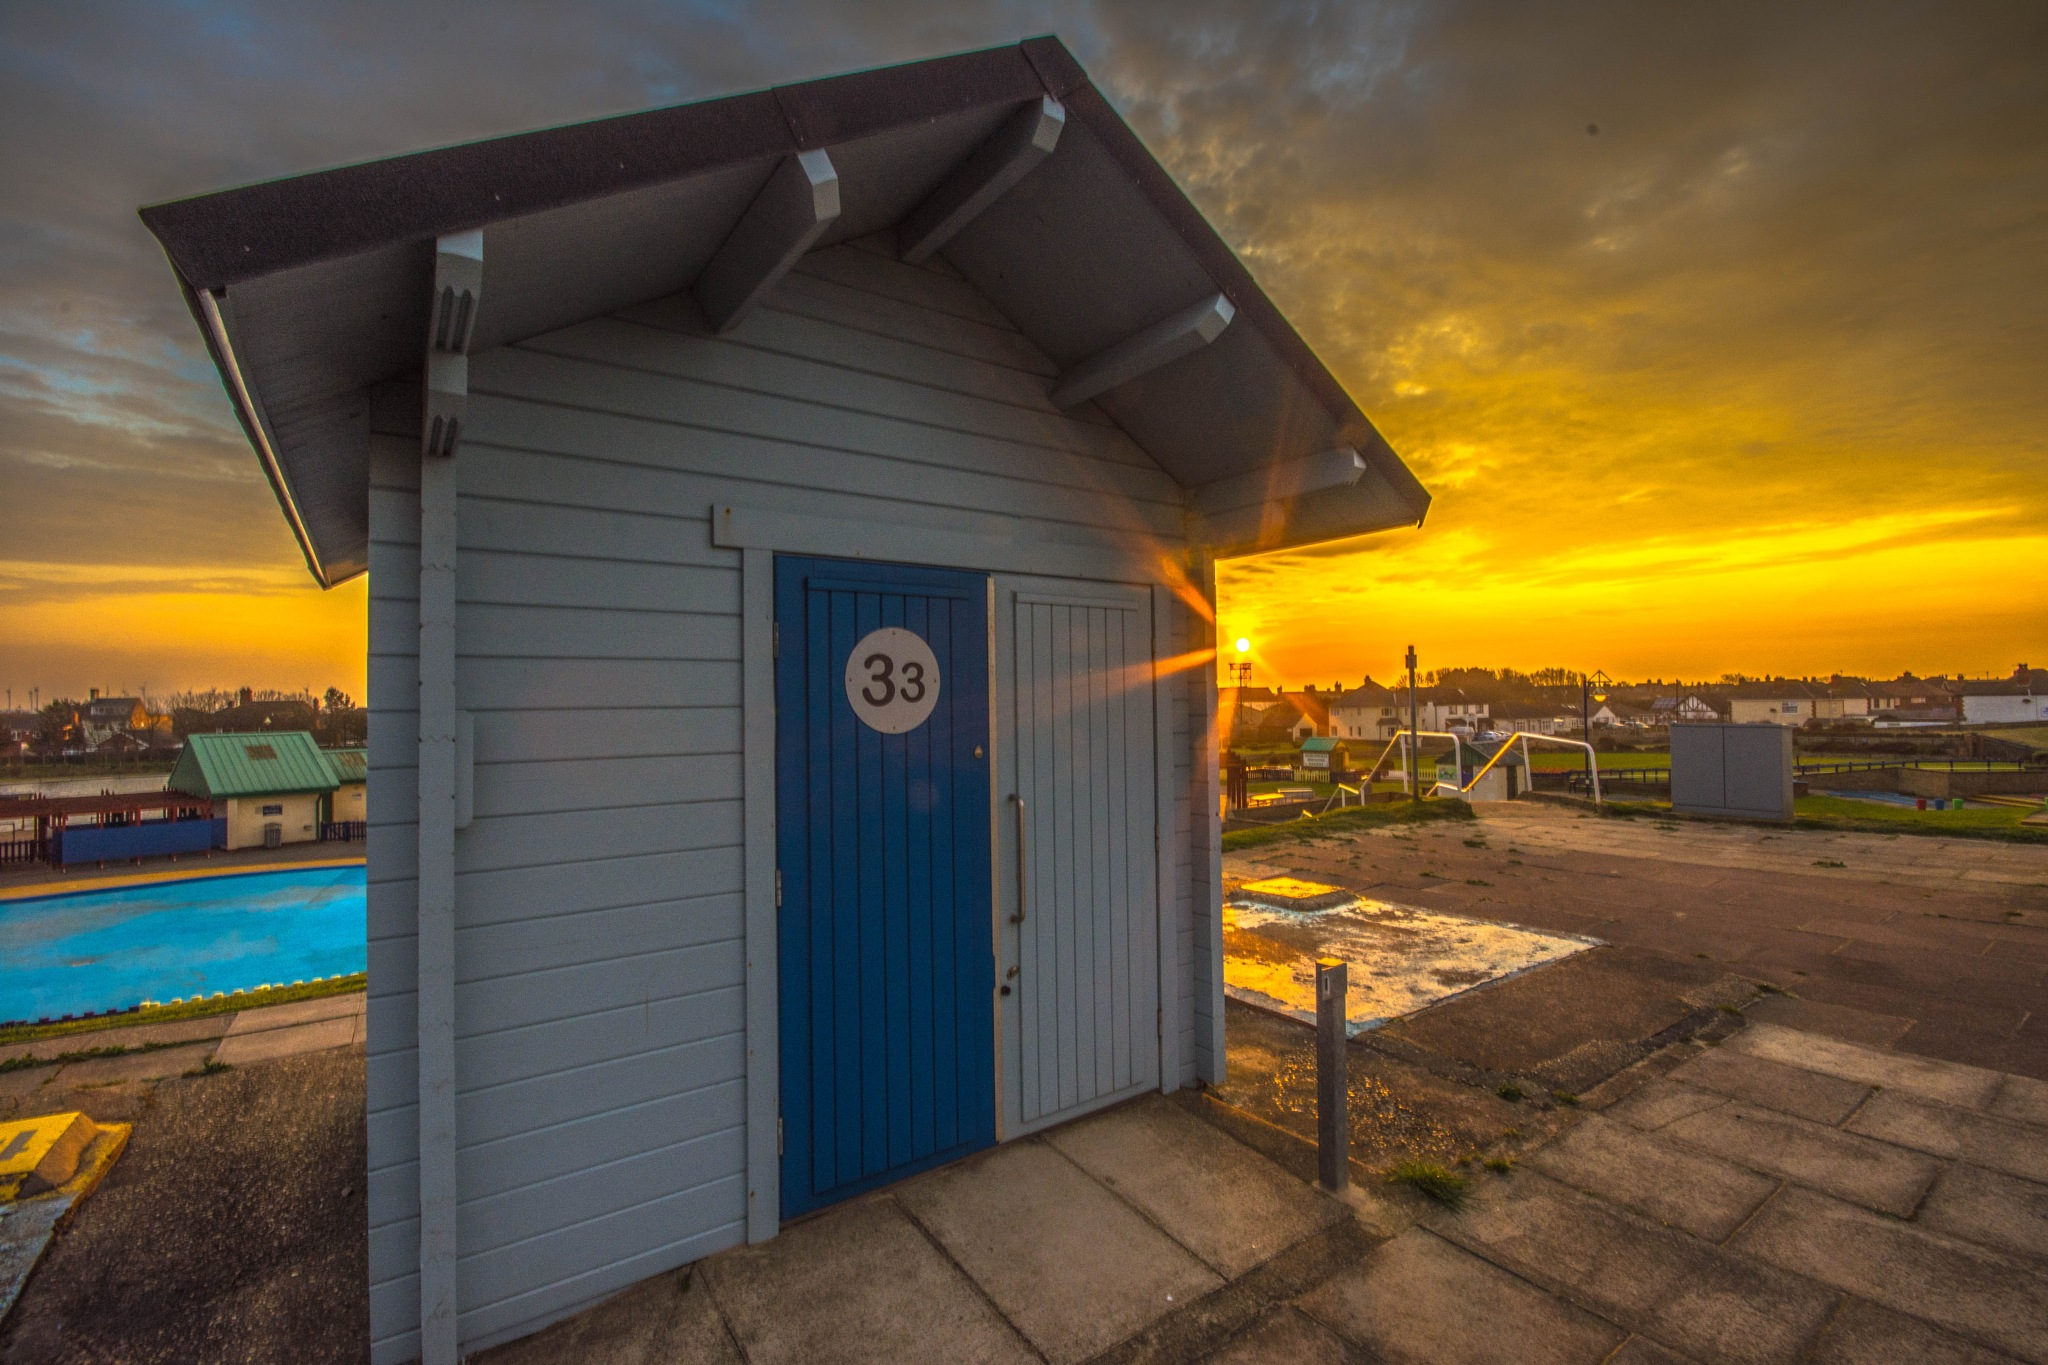 mablethorpe chalet at Sunset by robin.howe.56